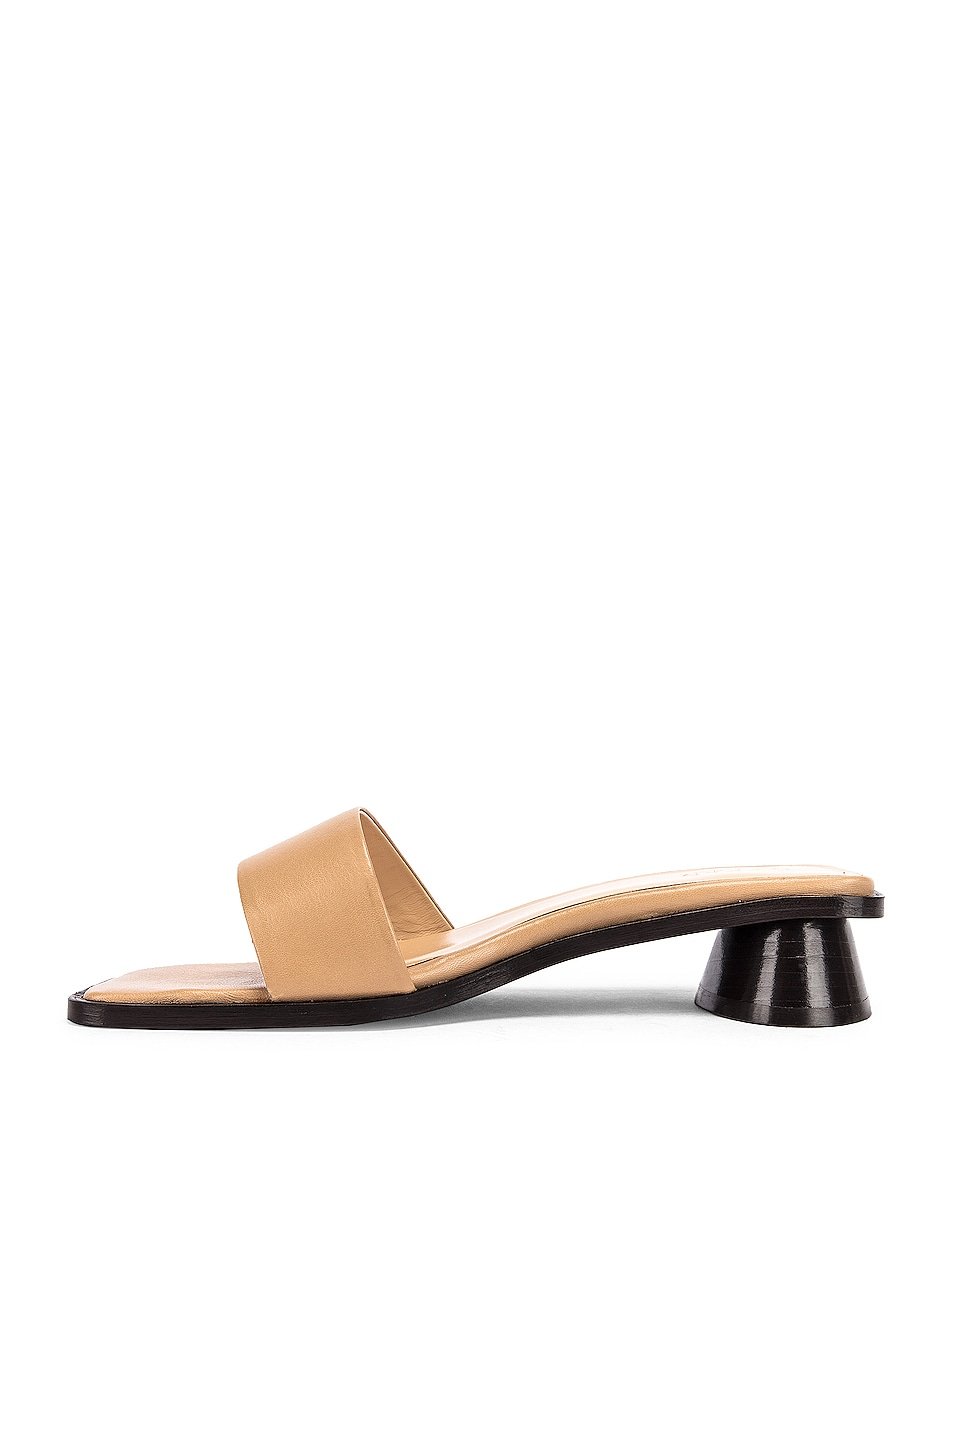 Image 5 of BY FAR Sonia Sandal in Nude